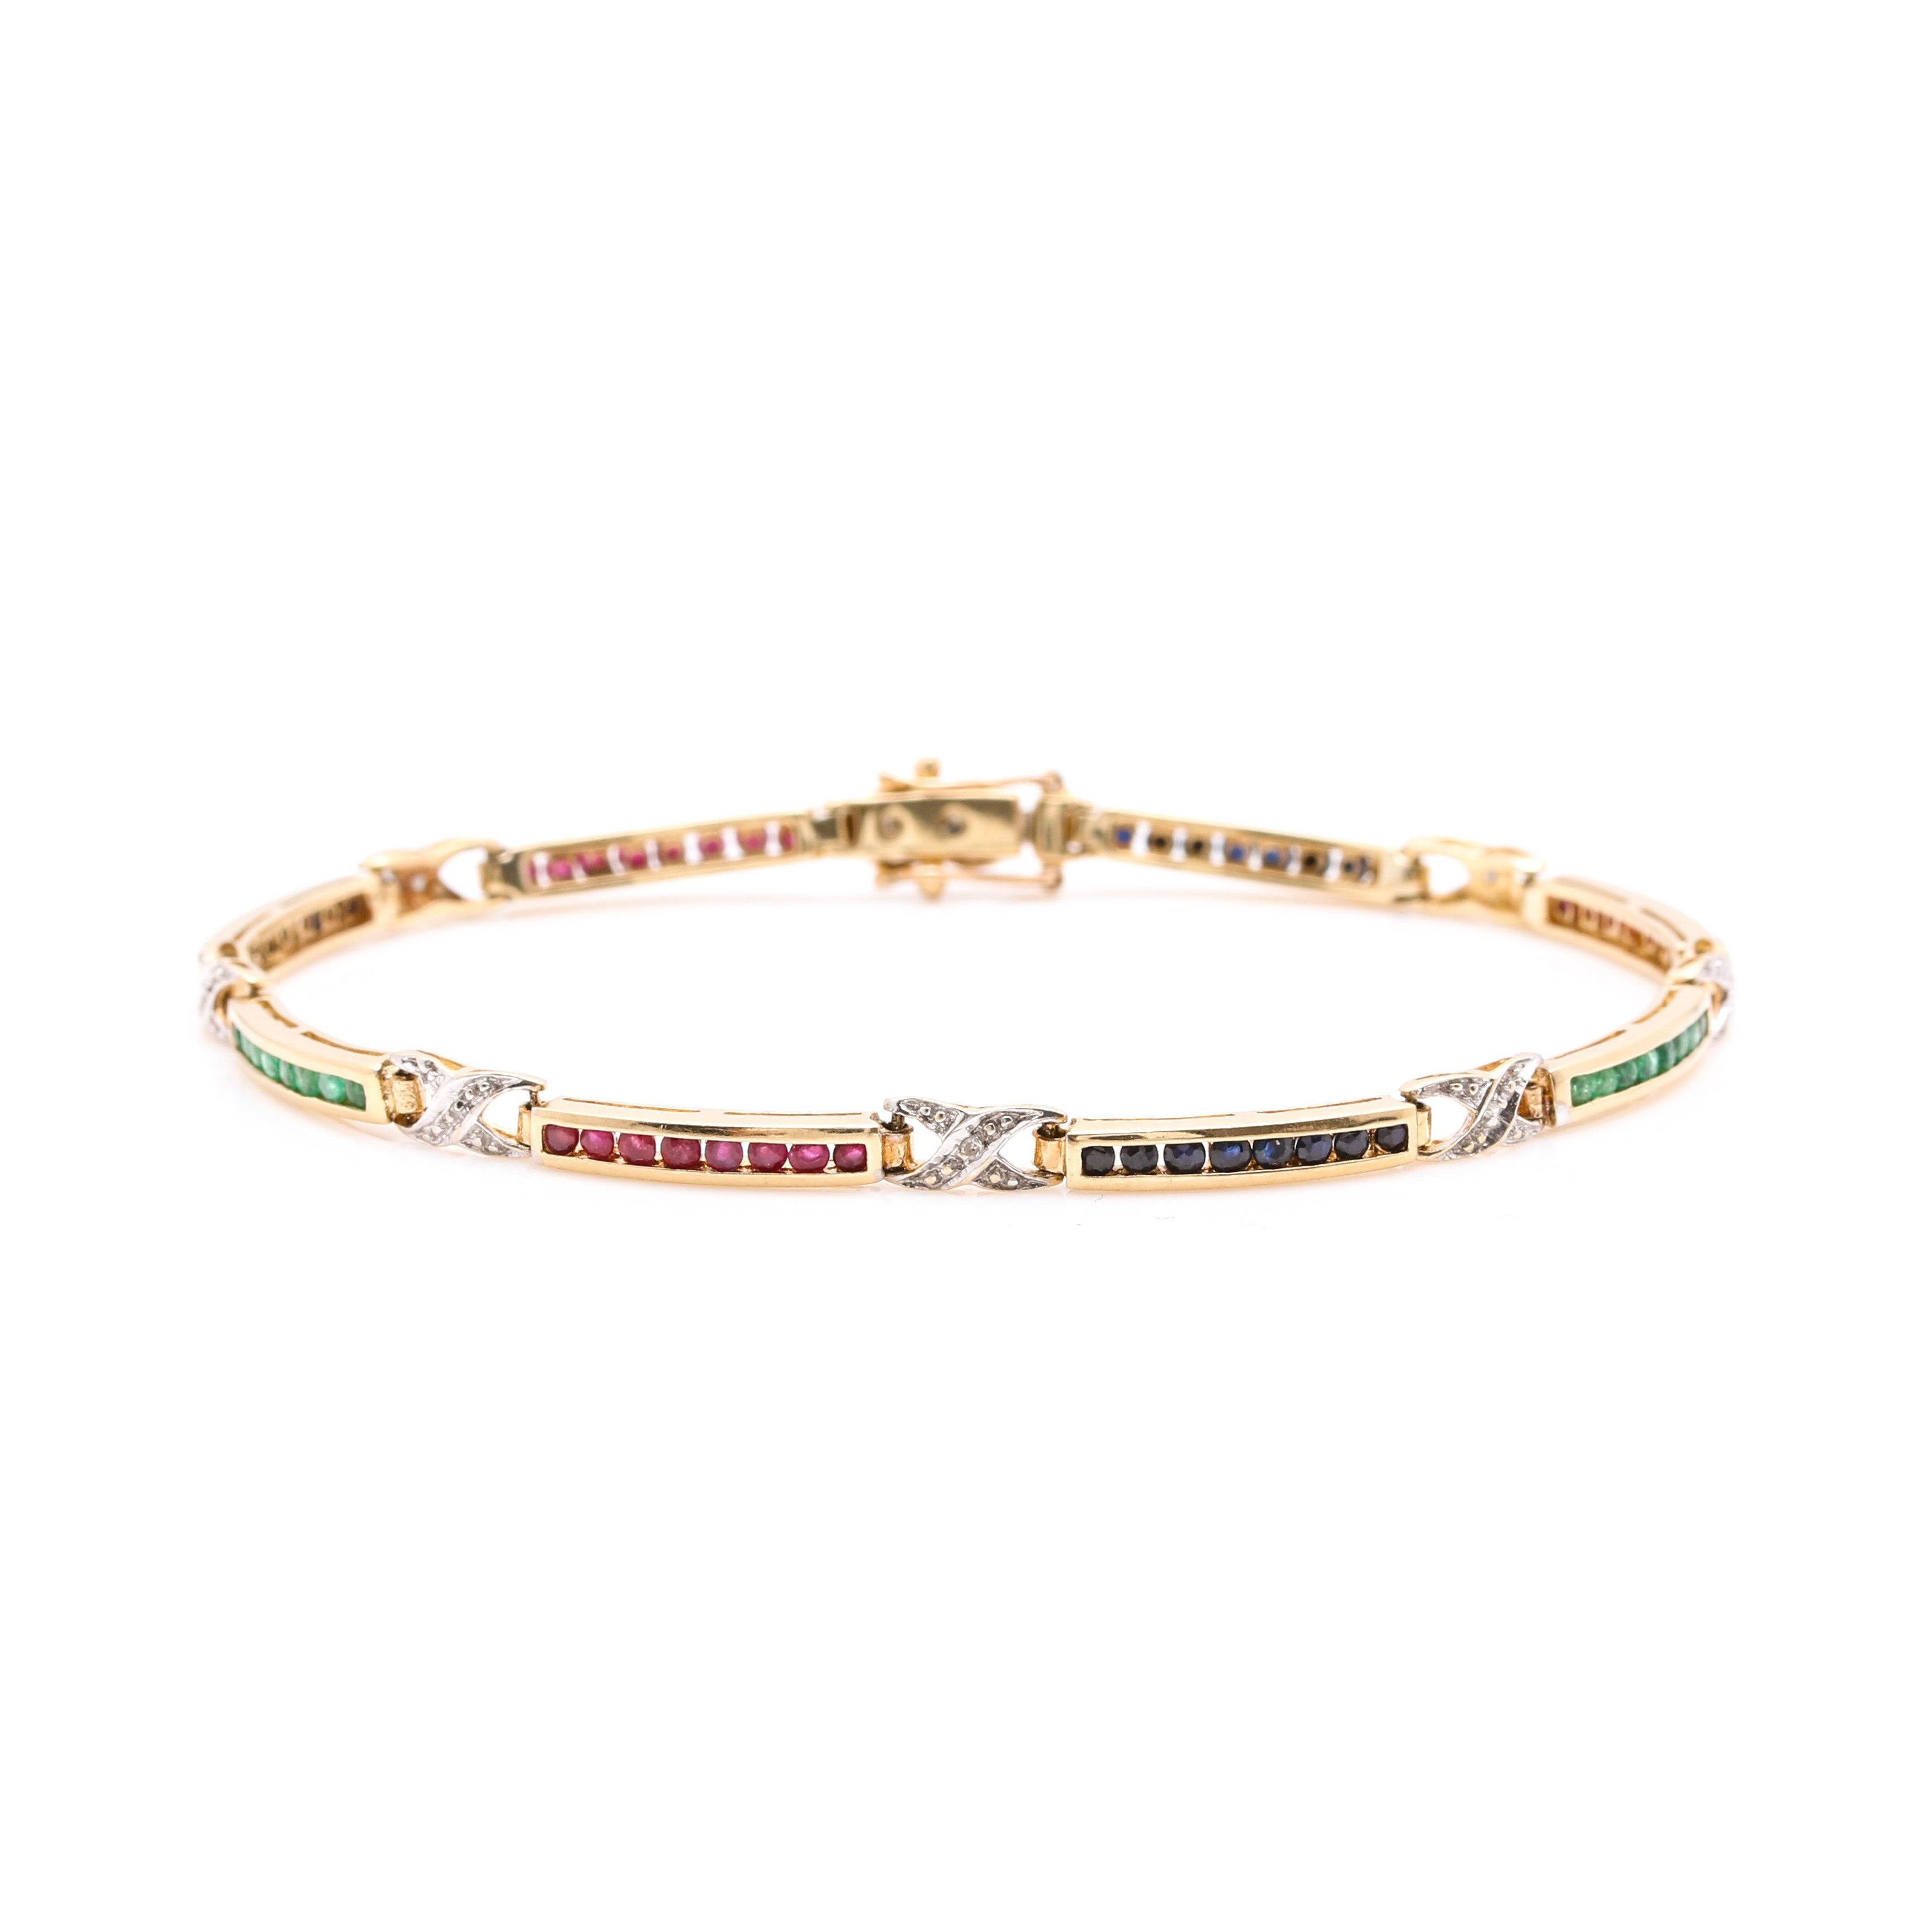 10K Yellow Gold Diamond, Ruby, and Sapphire Bracelet